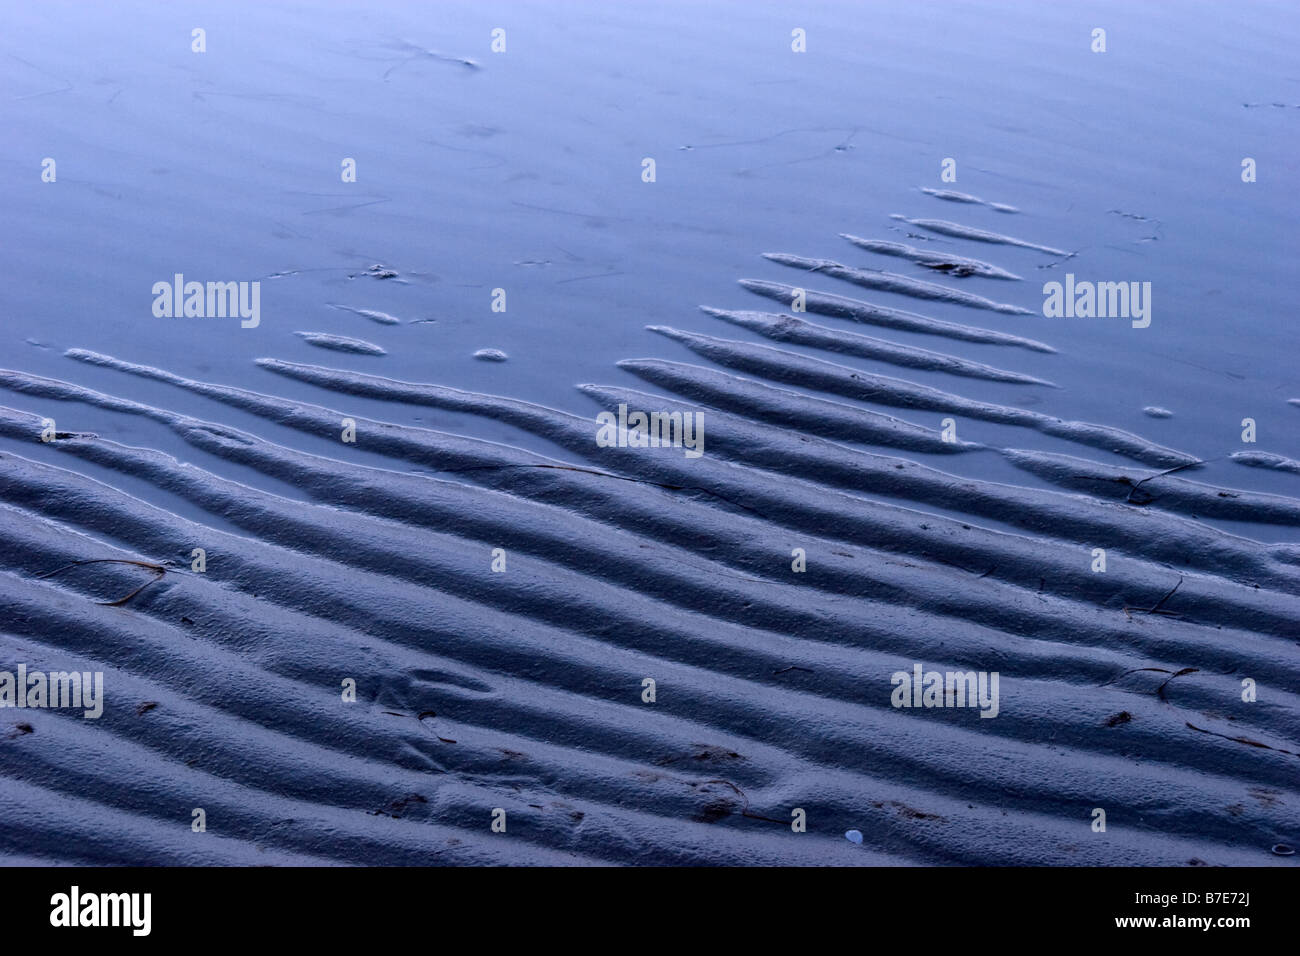 Patterns on beach - Stock Image